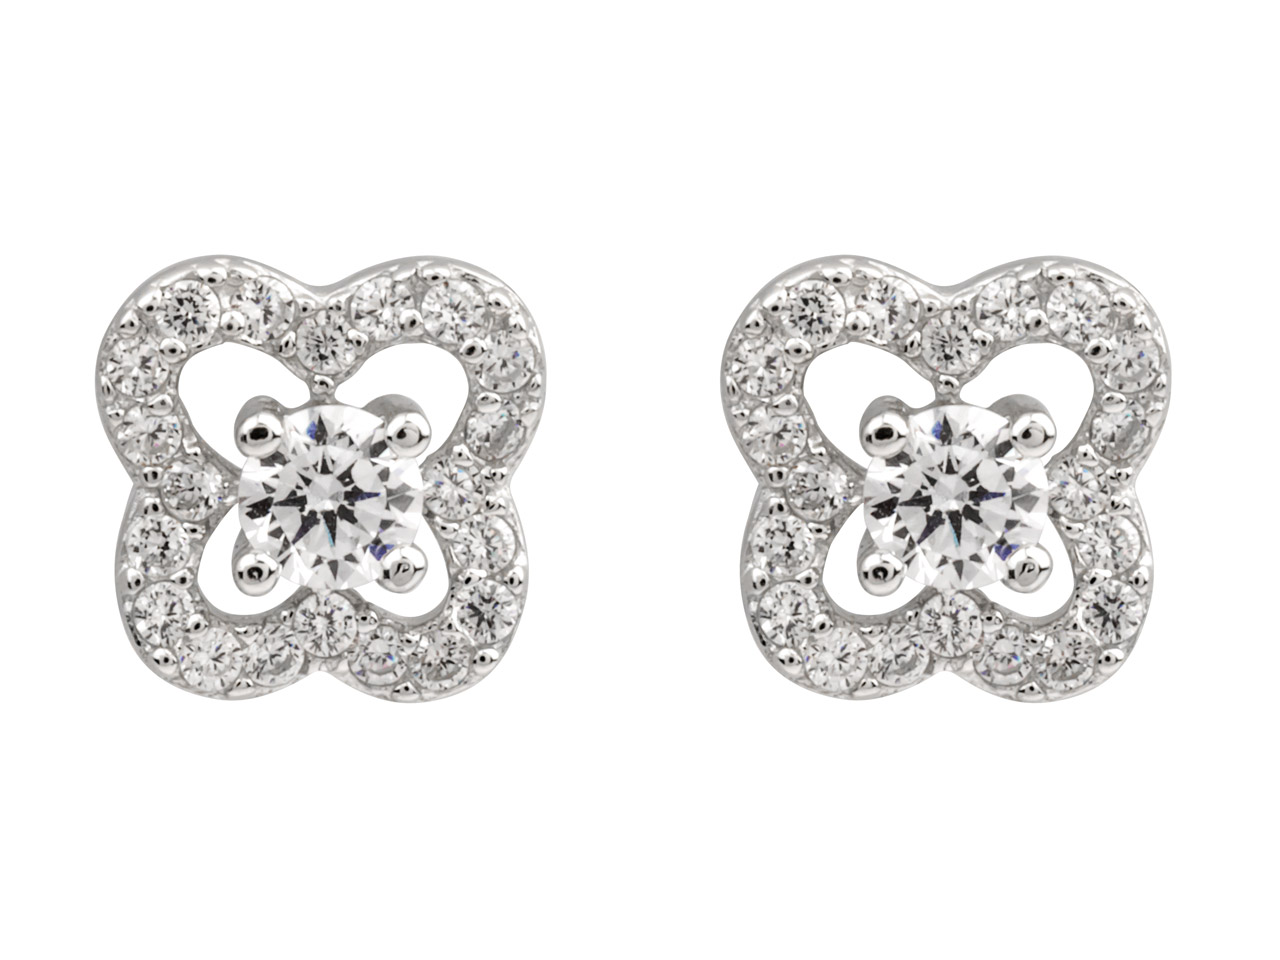 Sterling Silver Flower Stud        Earrings Set With Cubic Zirconia